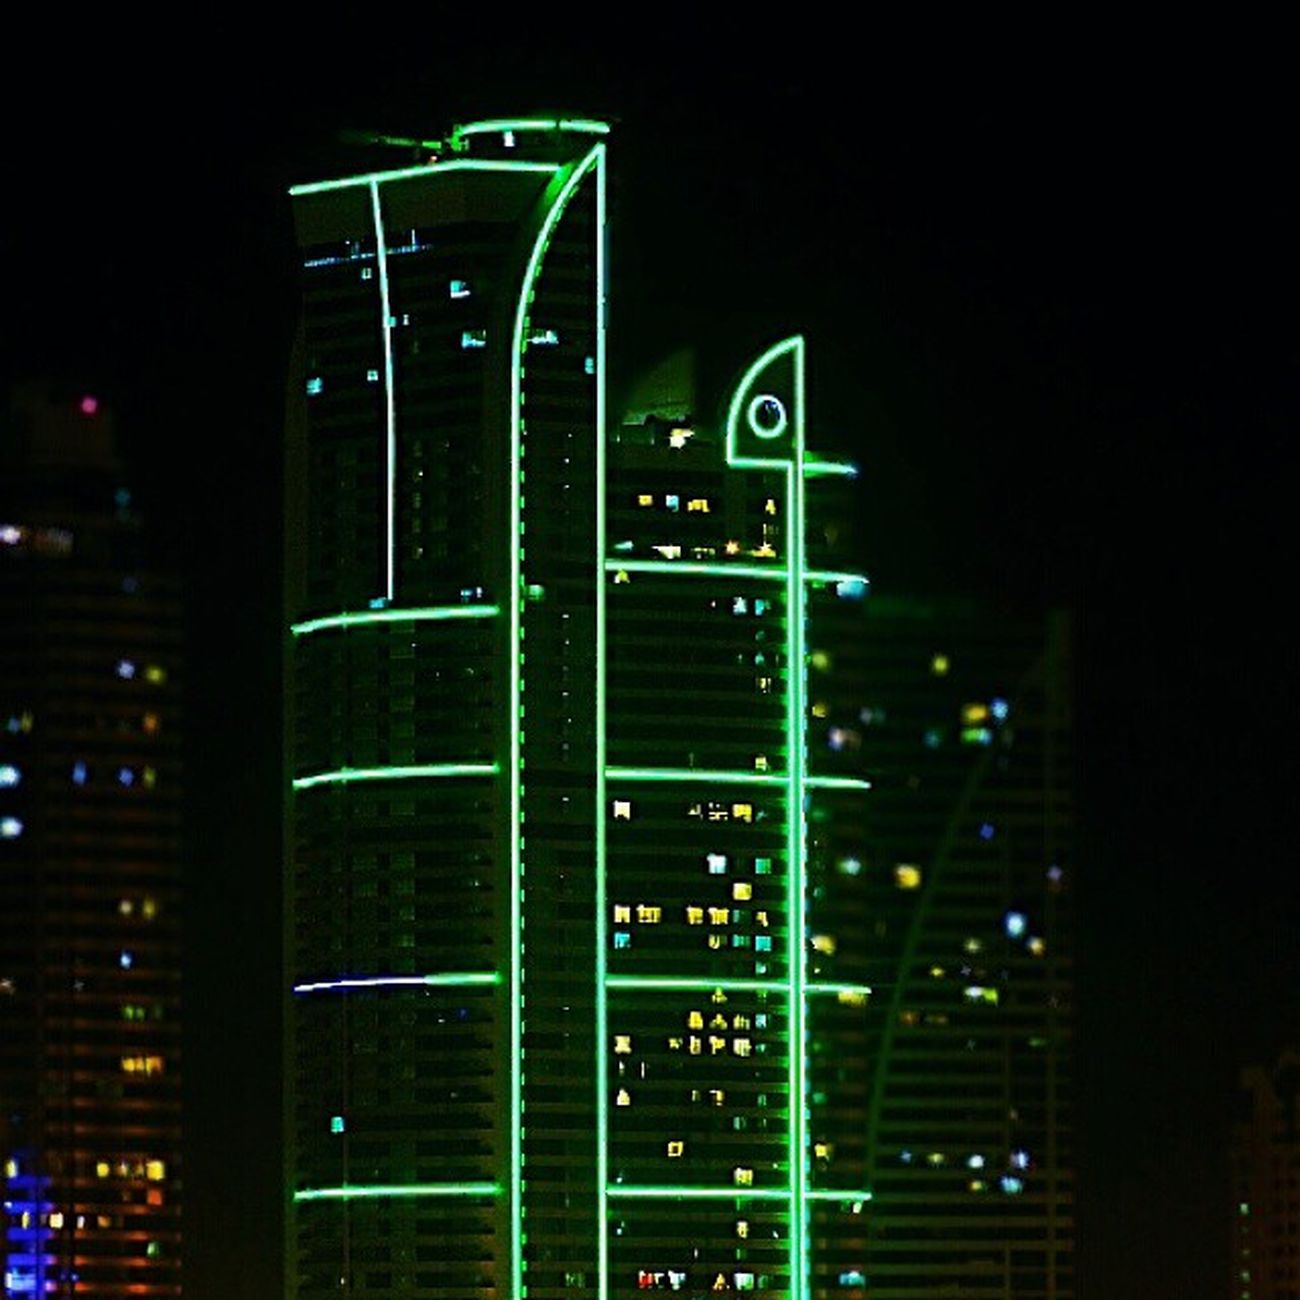 Nightvibes Lights Shadow Emerald 30x building neon Corniche almajaz buhairah From my window part 2 :D